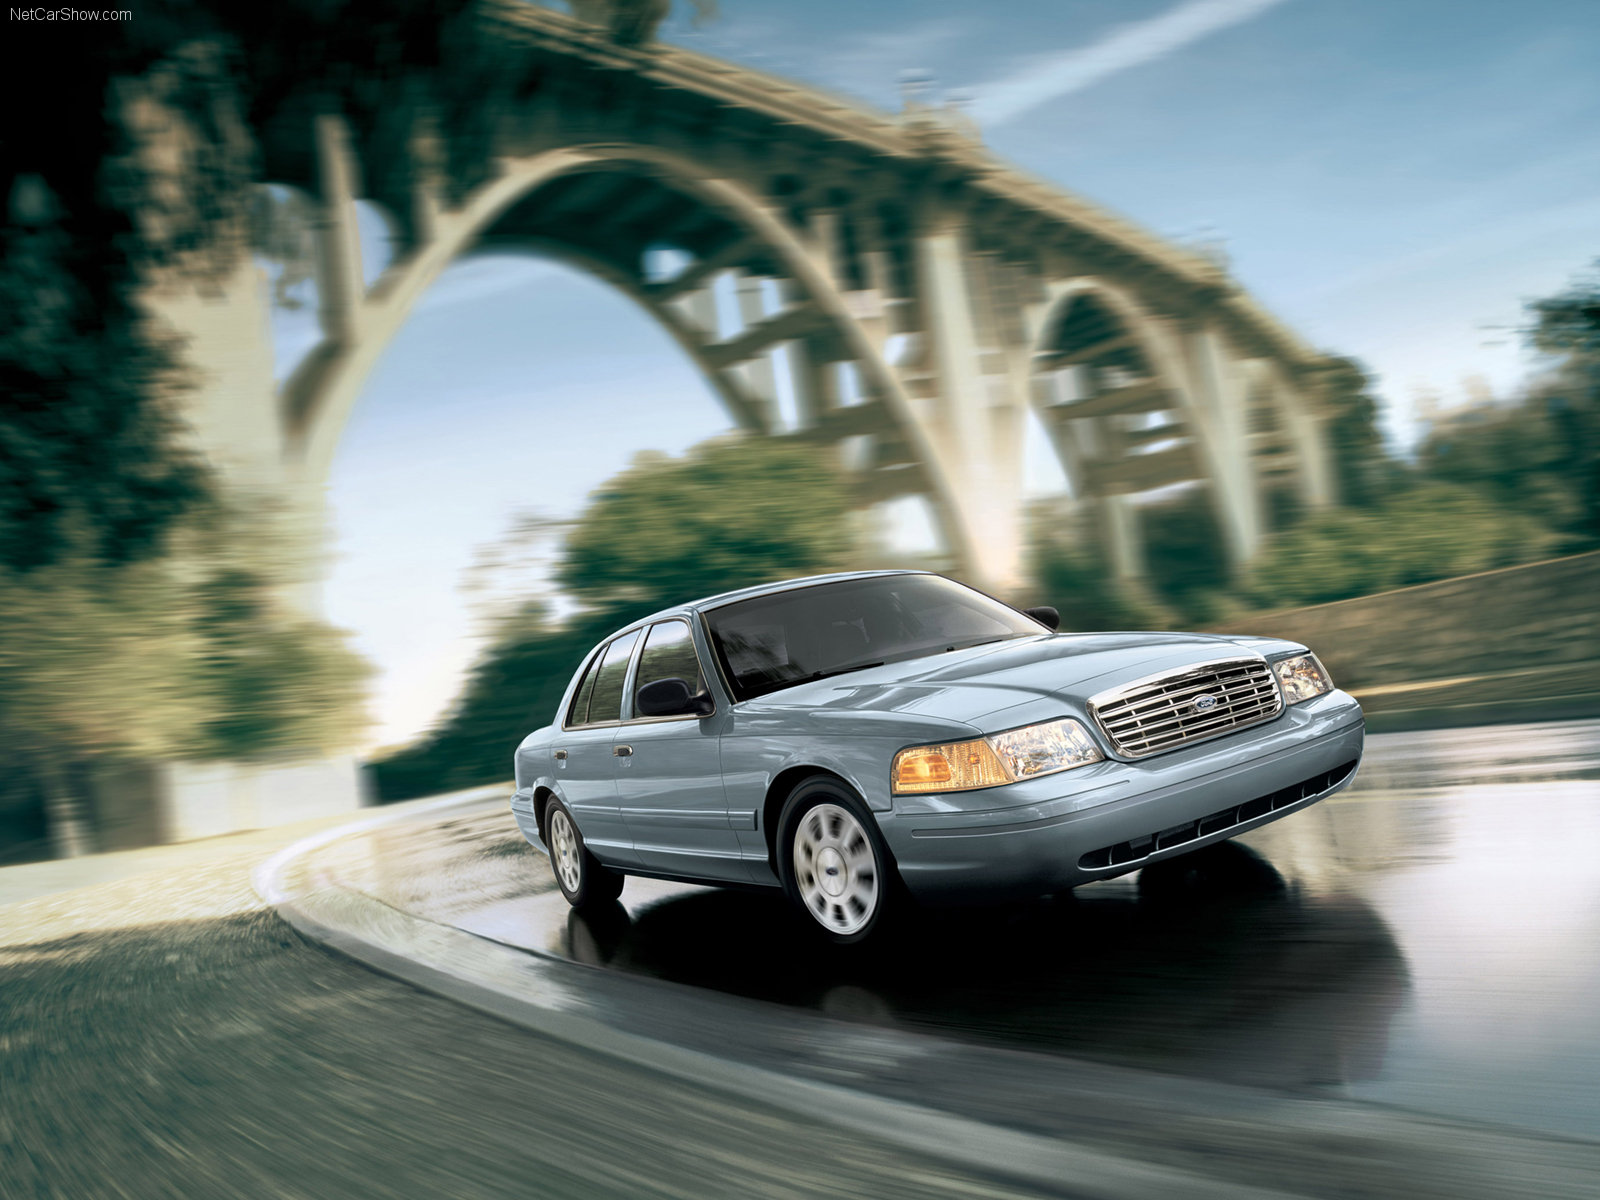 Ford Crown Victoria photo 33143